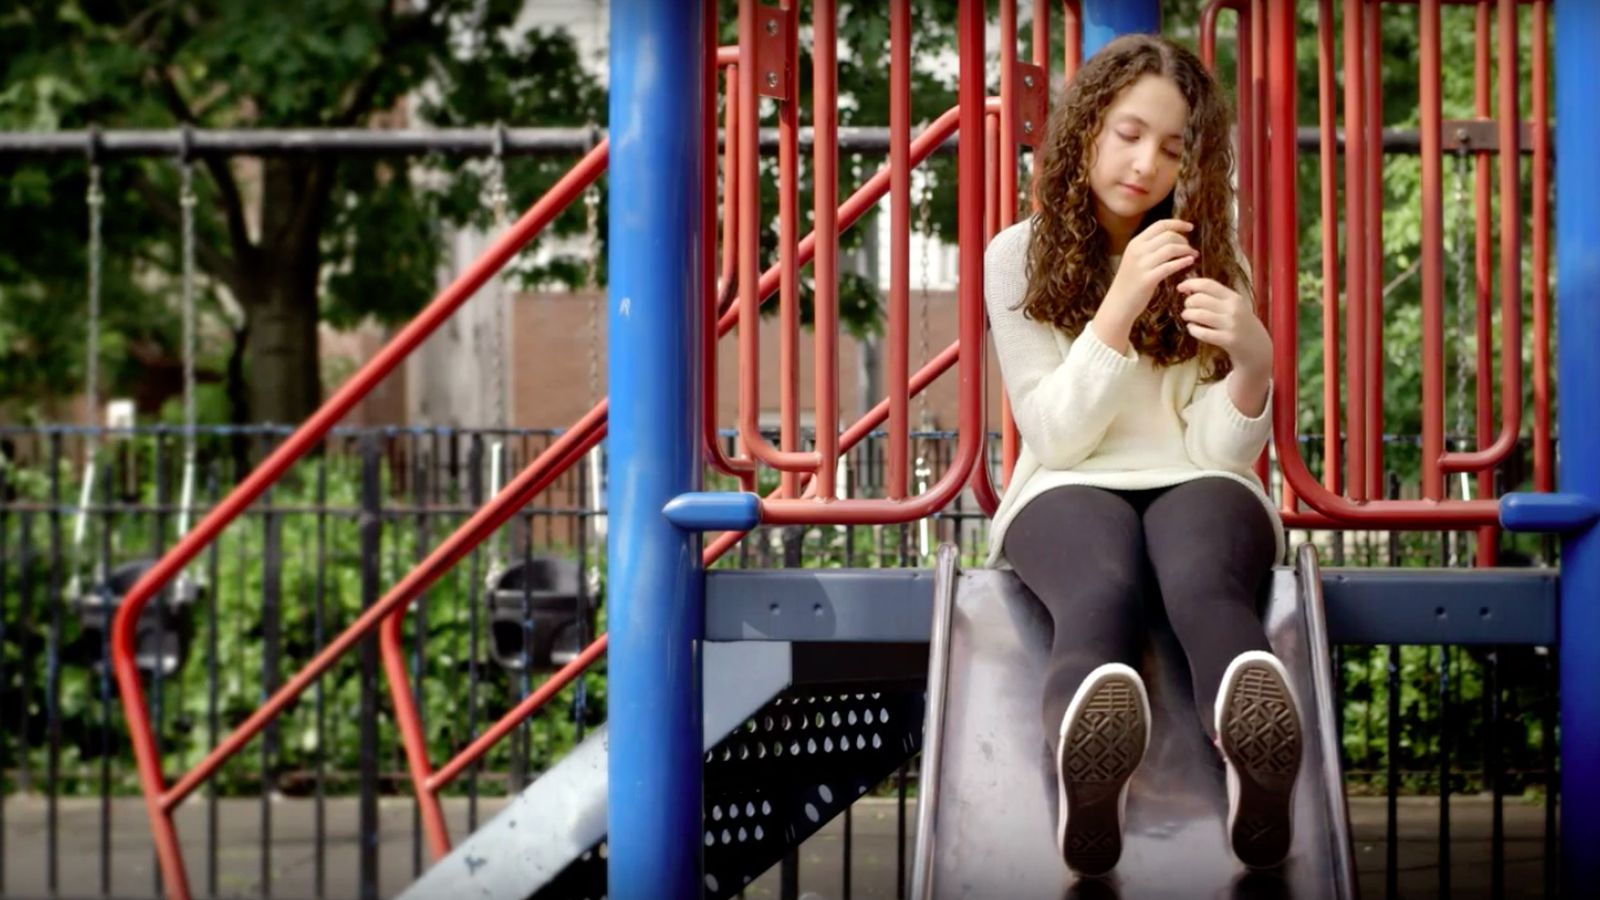 Dove's Newest Self-Esteem Video Targets Preteen Girls